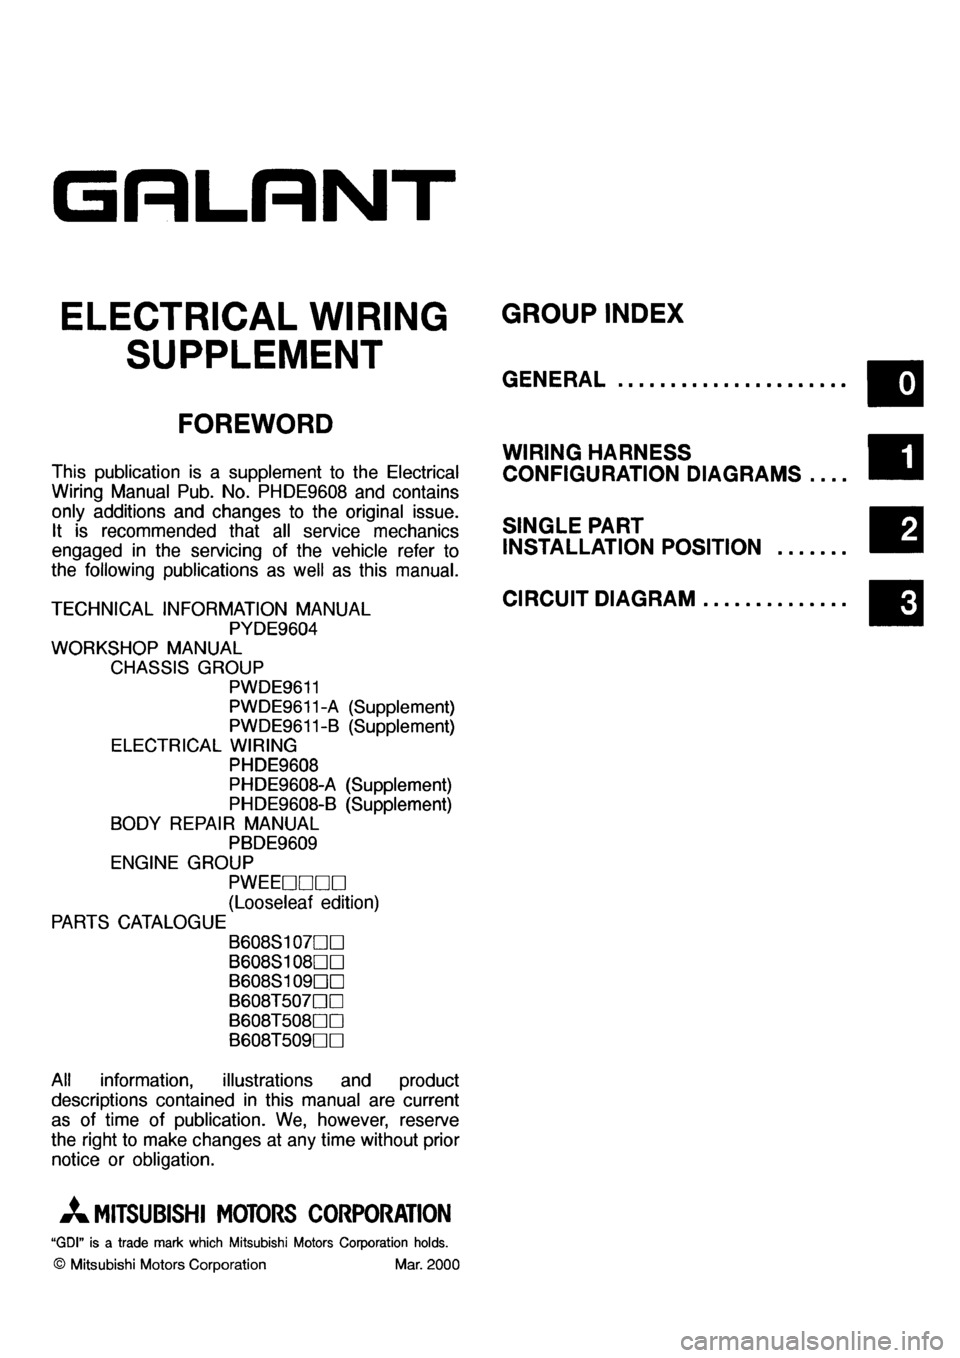 Mitsubishi galant 2001 8 g electrical wiring diagram workshop manual on wiring diagram mitsubishi galant 2001 Mitsubishi Radio Wiring Diagram 2001 Mitsubishi Galant Starter Schematics